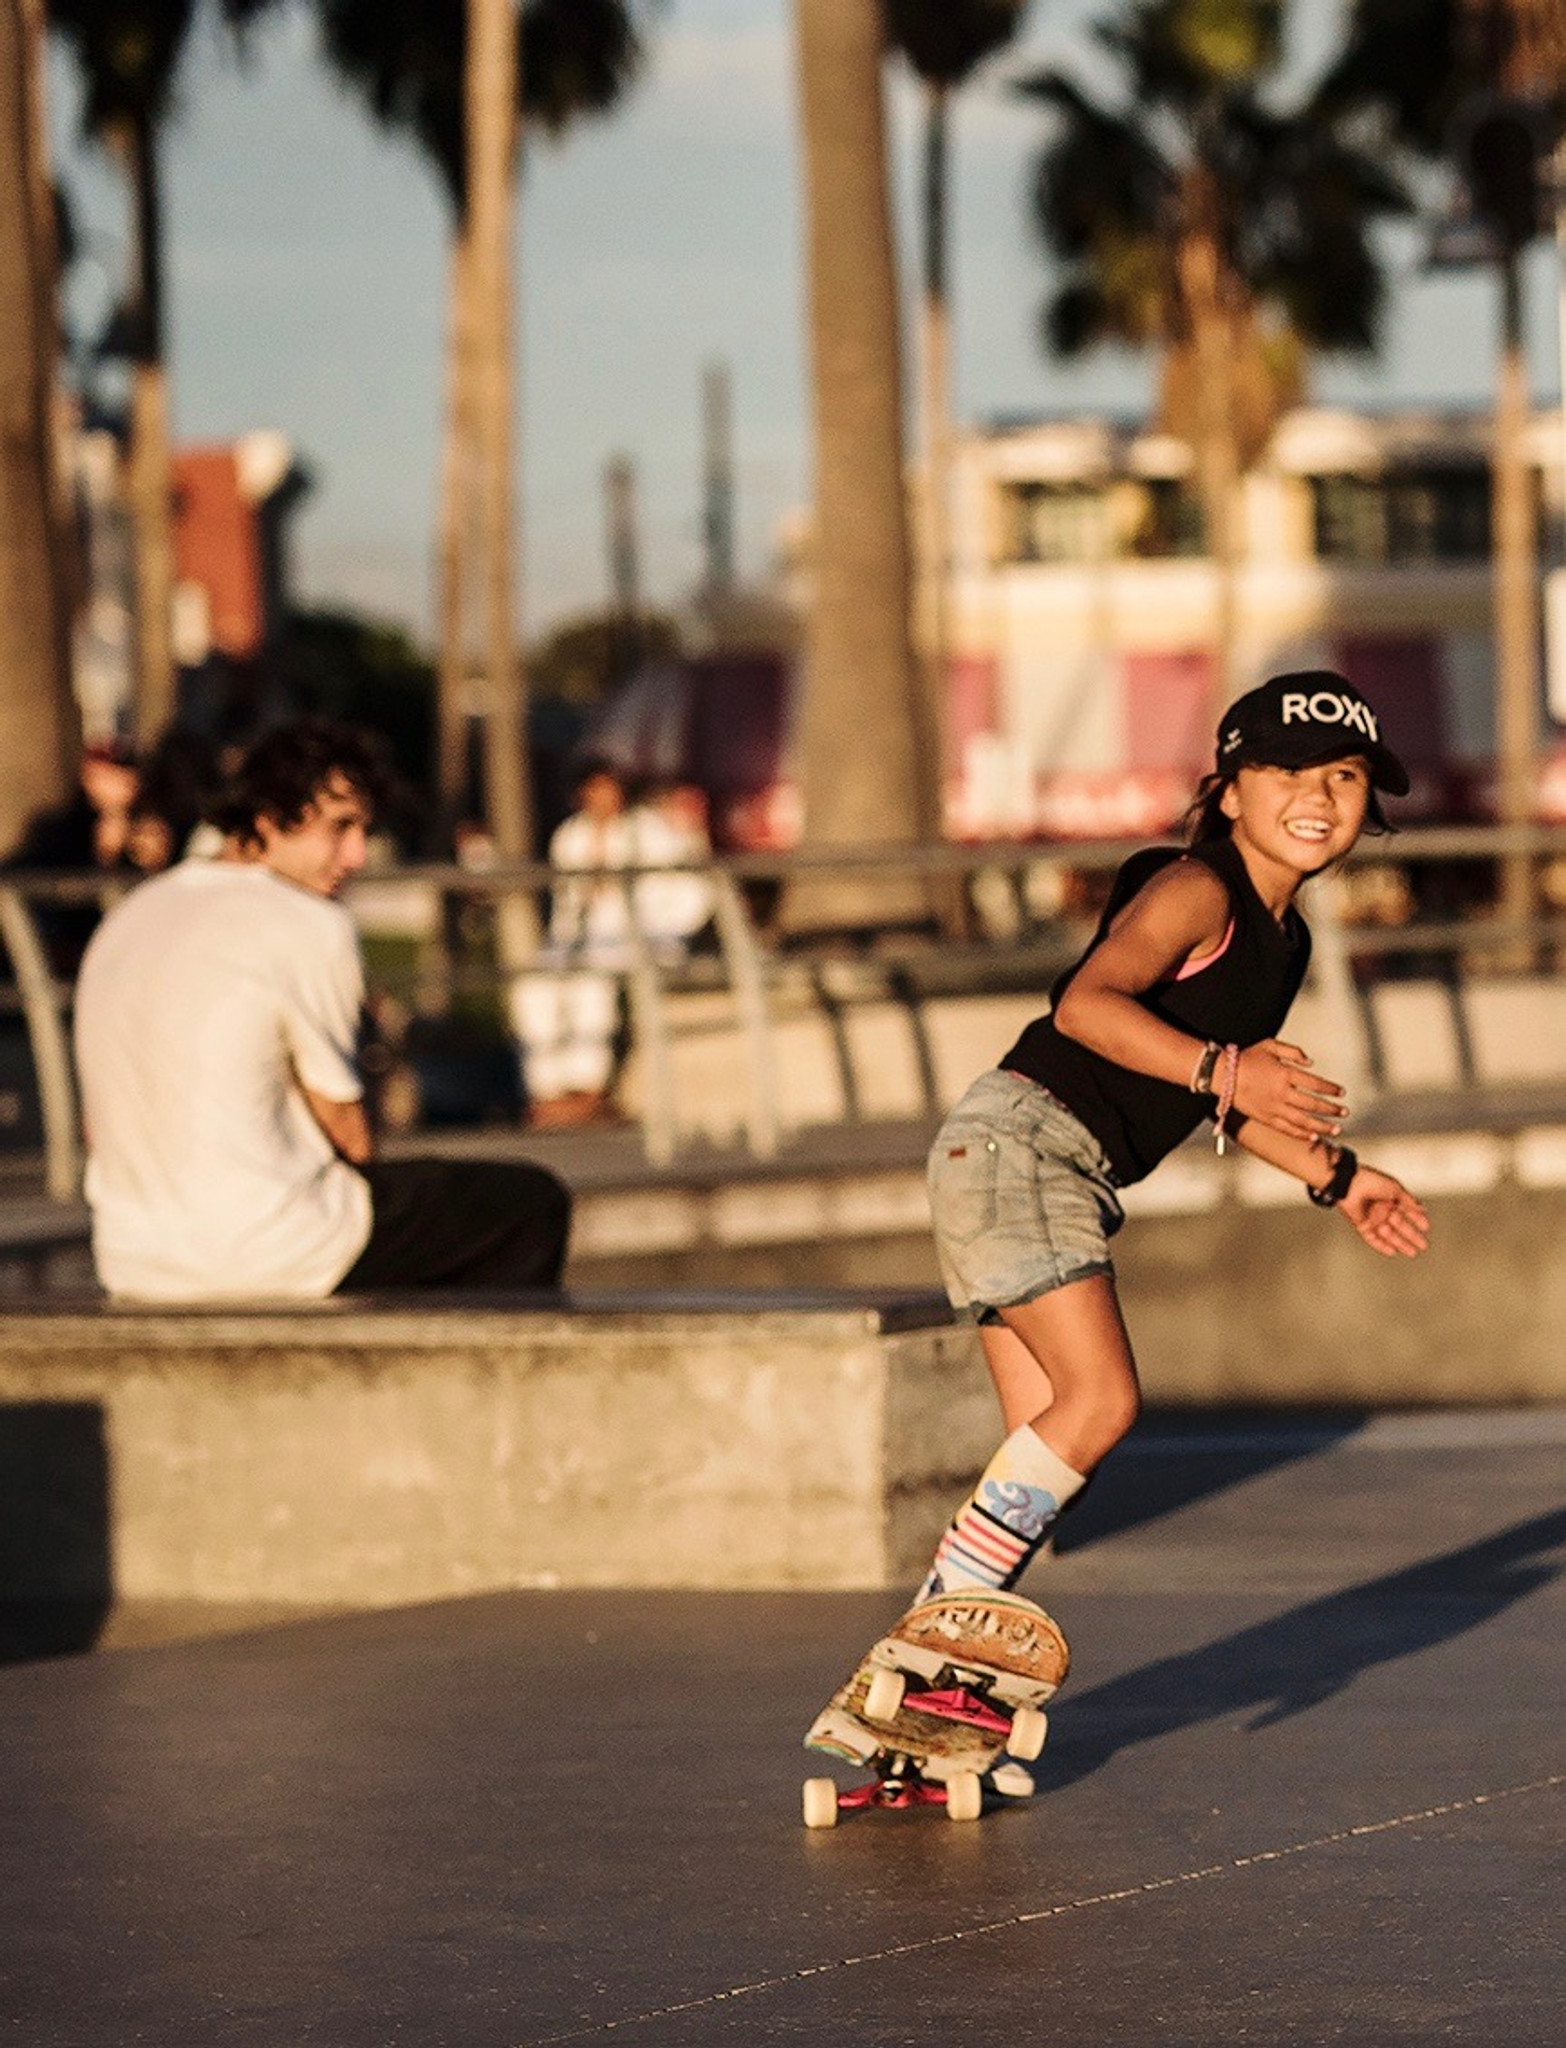 a93eab897f3 always happy when sky brown skates while wearing her skys the limit pride  socks